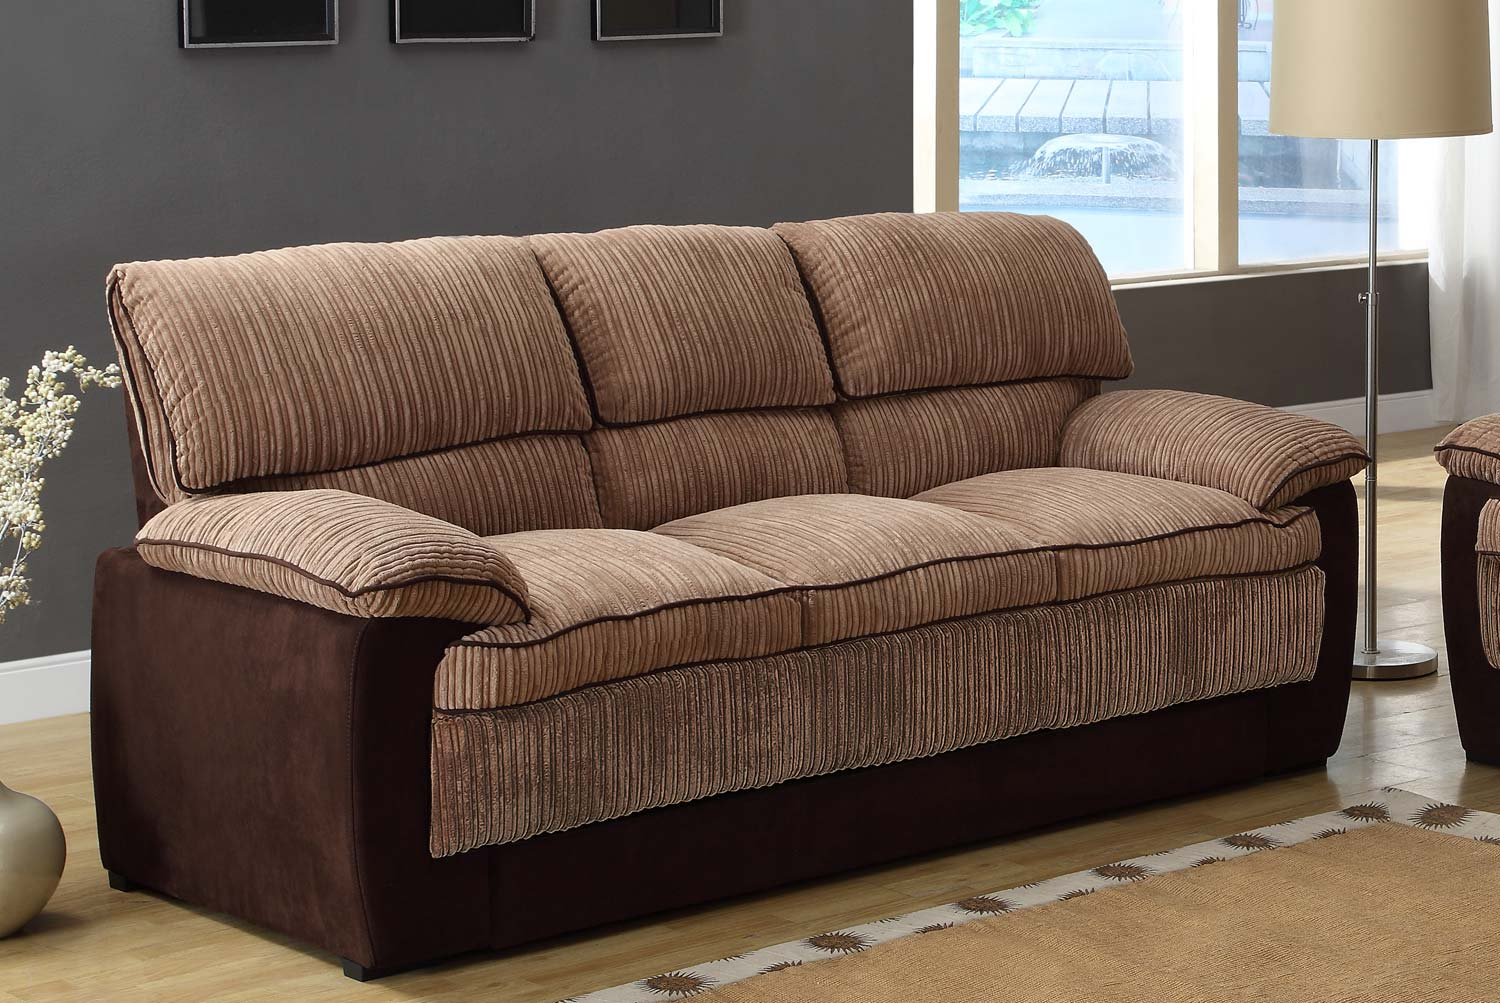 Homelegance mccollum sofa set brown corduroy and microfiber u9746 3 Brown microfiber couch and loveseat